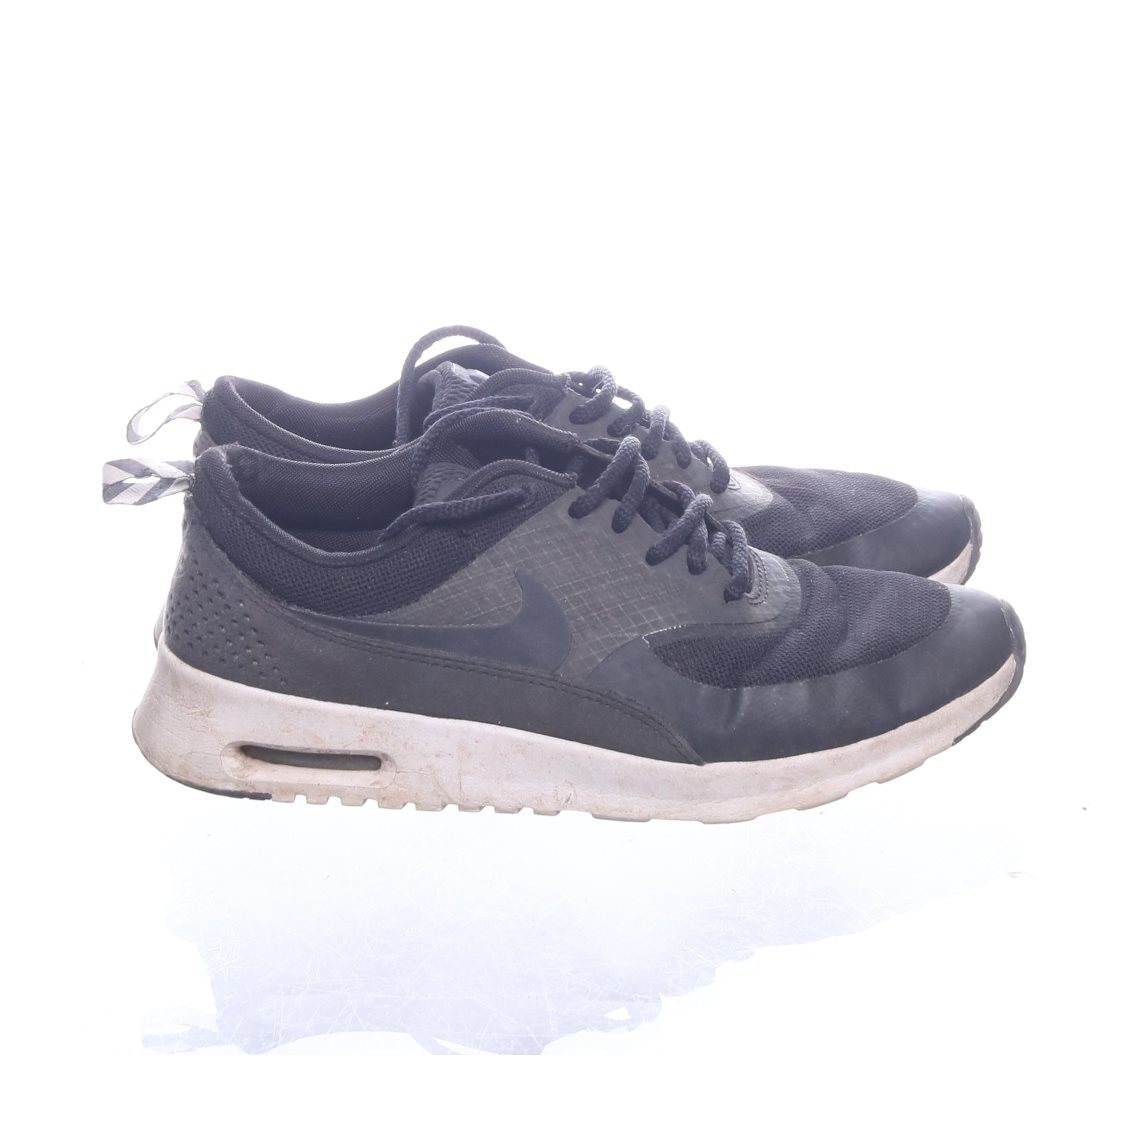 best website 7c127 126d9 Nike, Sneakers, Strl  38,5, Air Max Thea, Svart